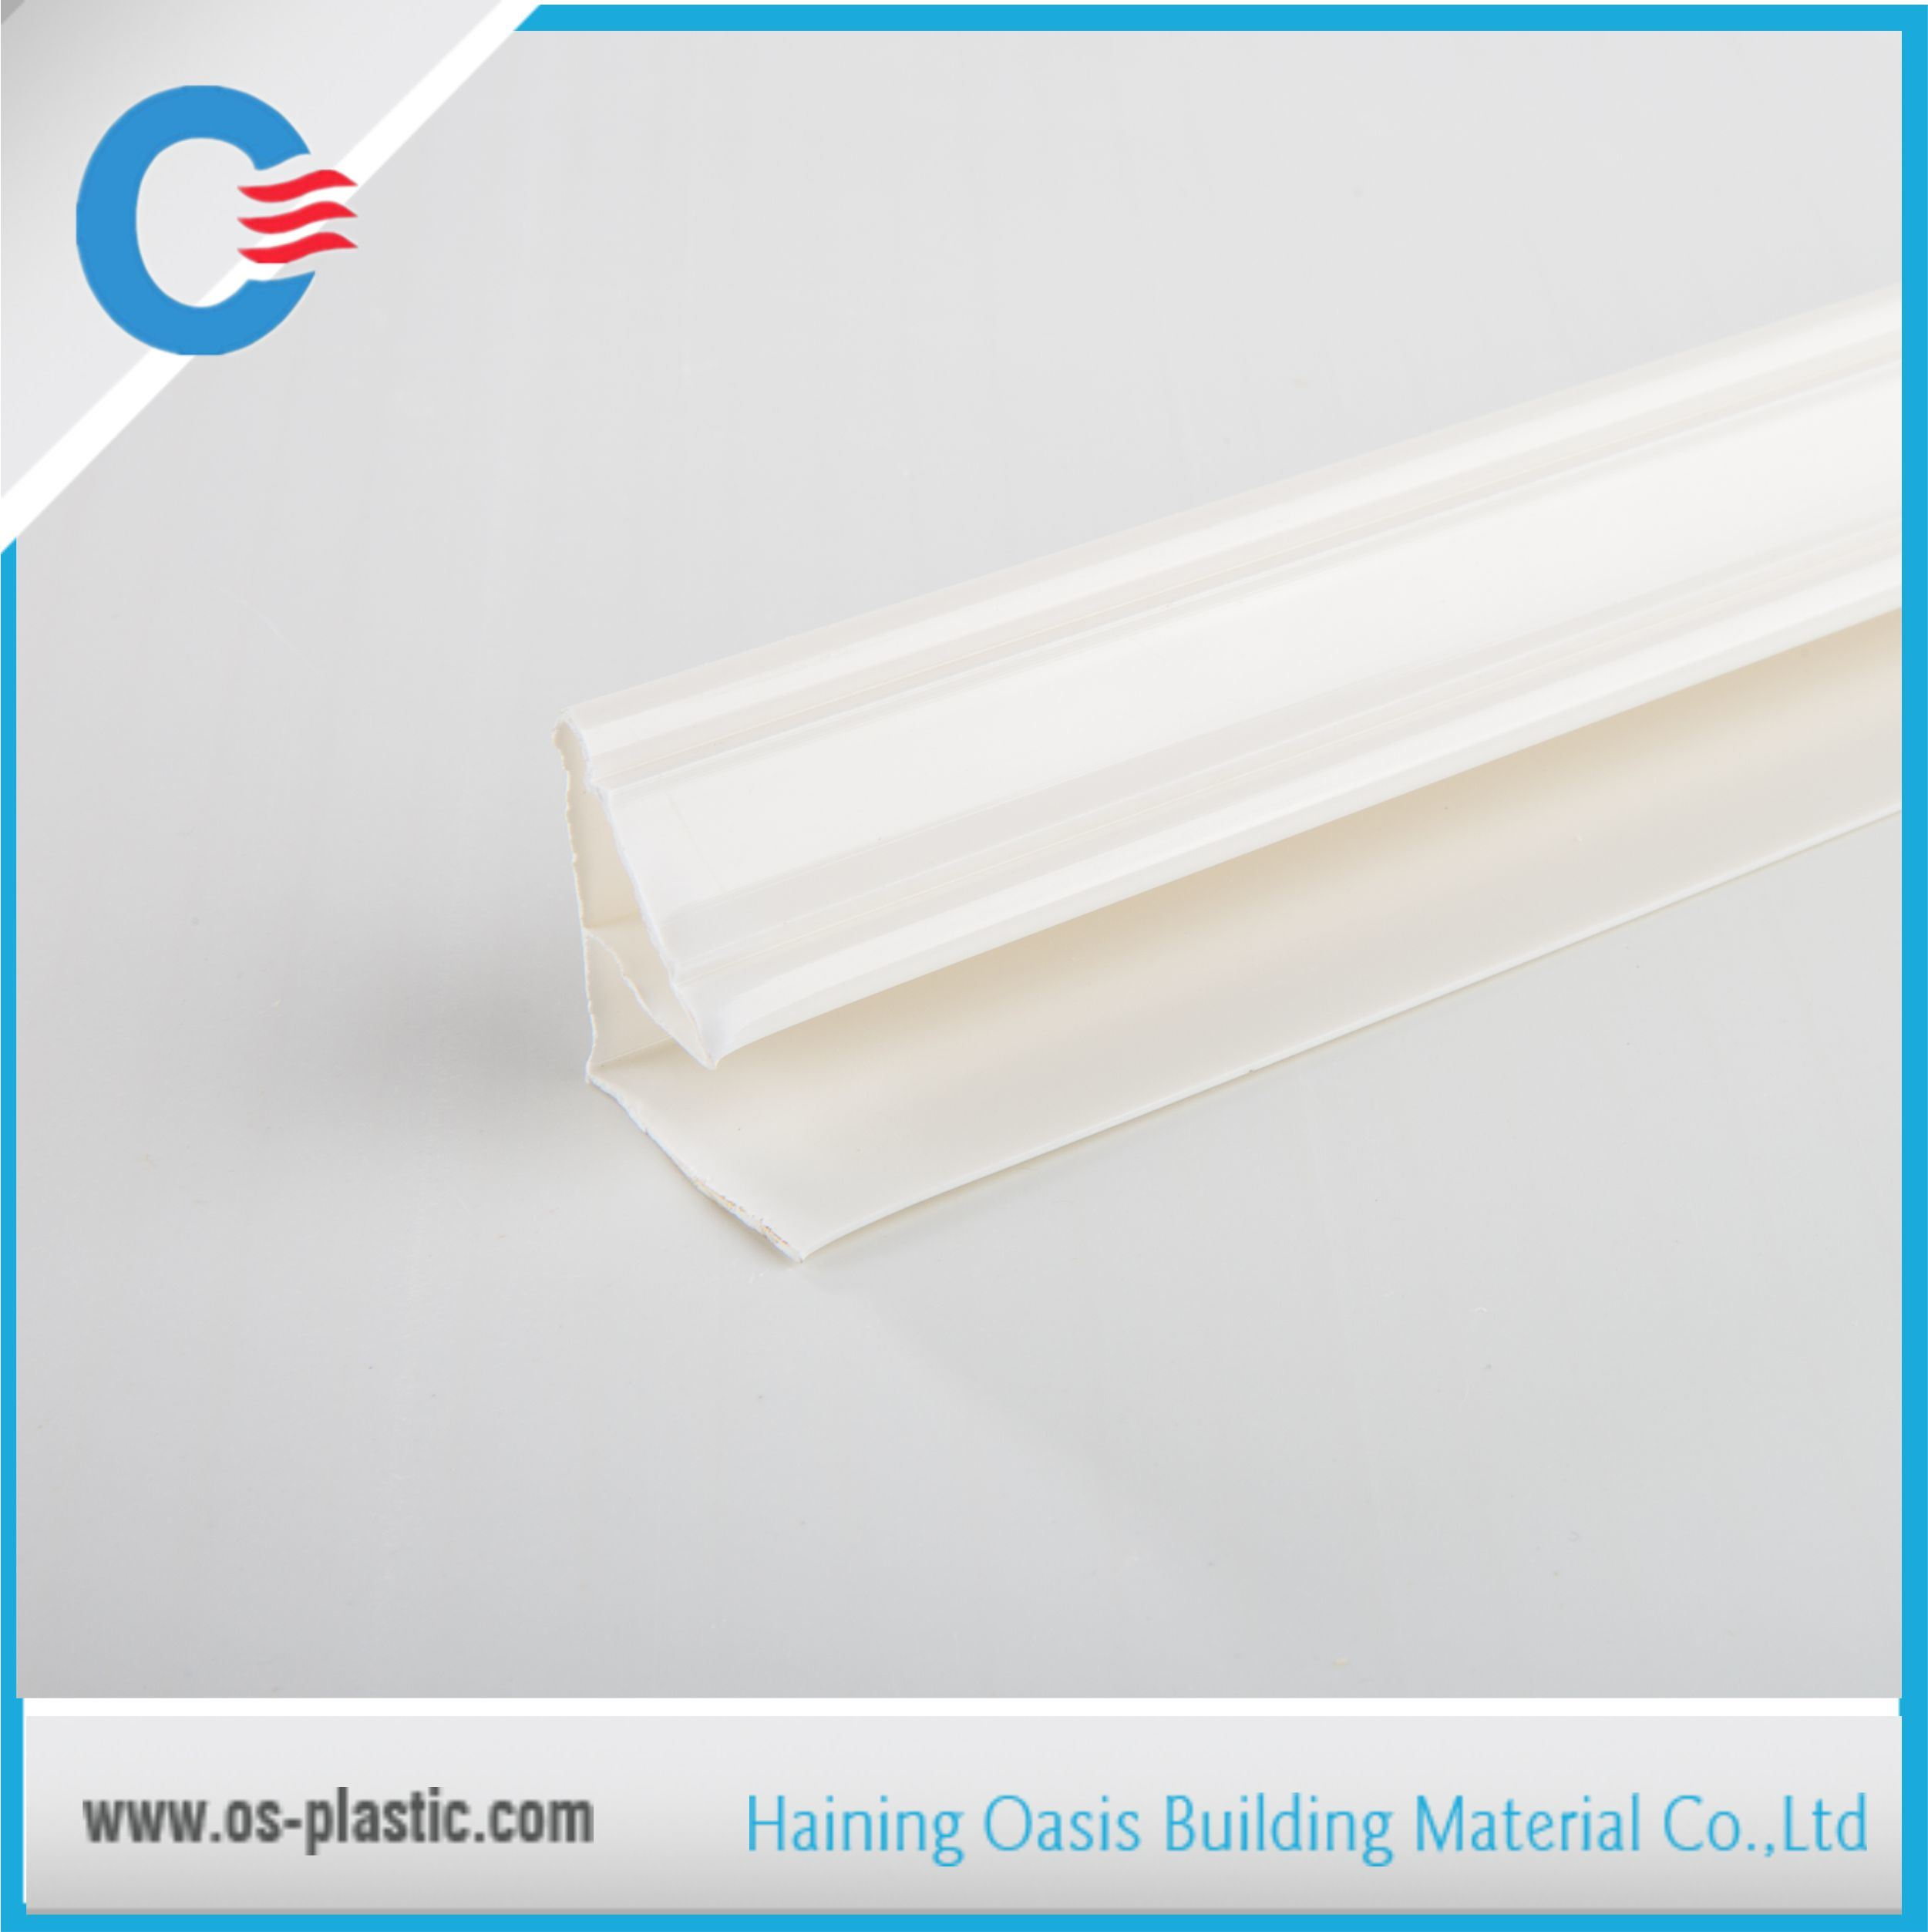 PVC Top Angle Accessory Profiles for PVC Ceiling Panel Installation